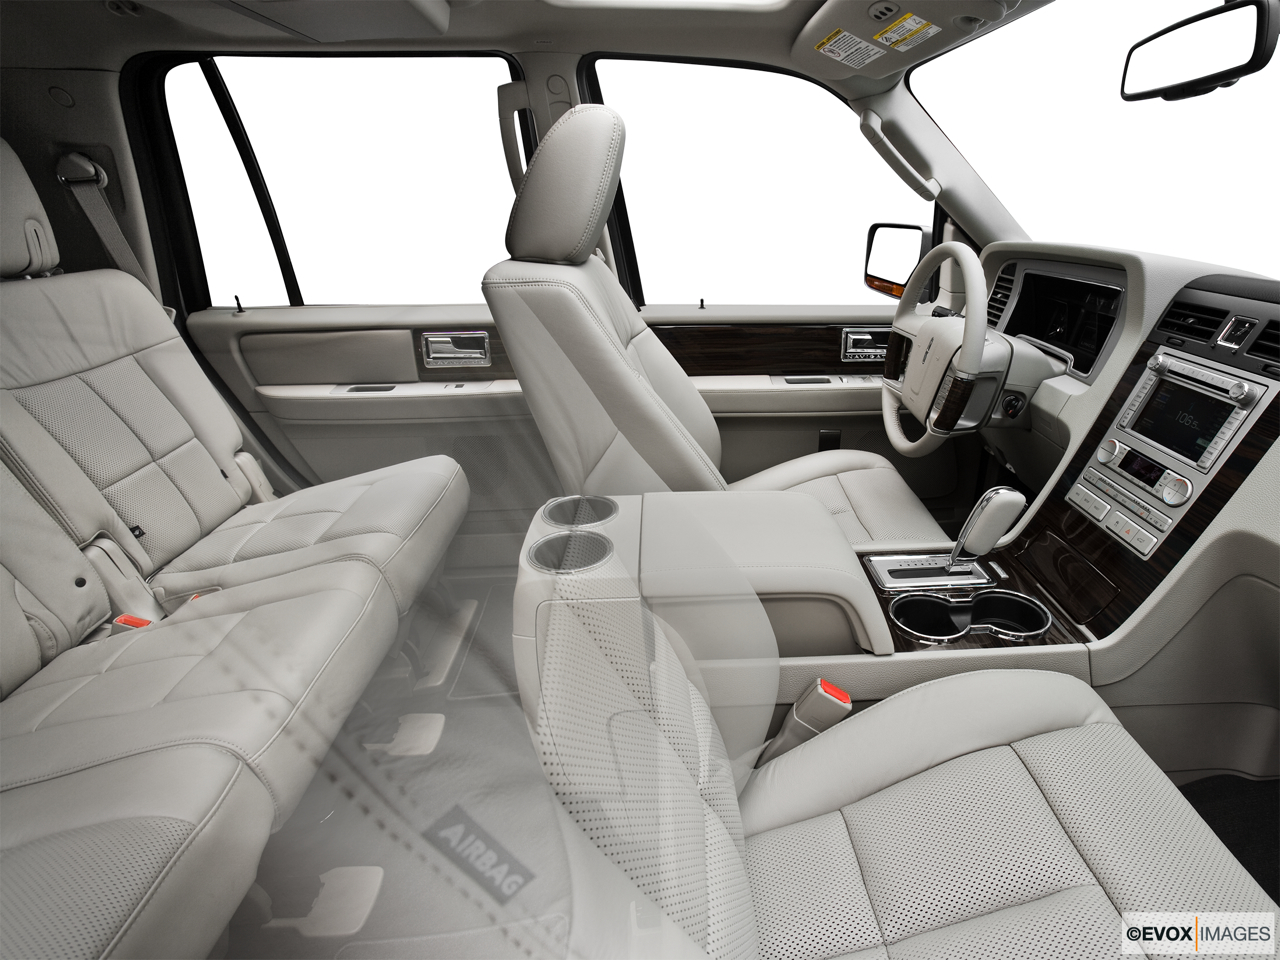 2010 Lincoln Navigator Base Fake Buck Shot - Interior from Passenger B pillar.